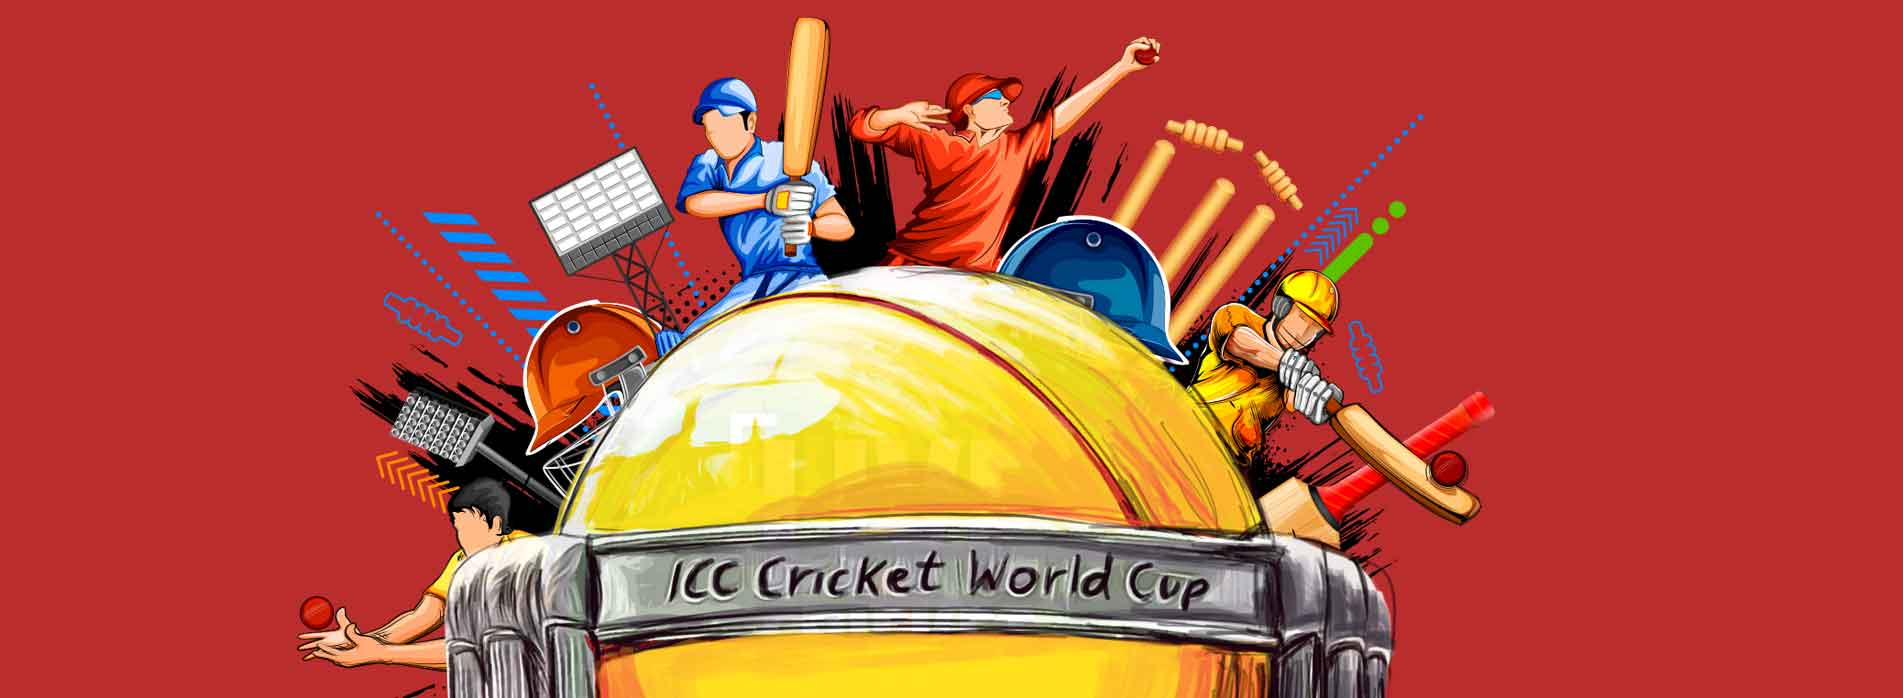 Why the World Cup is still king of cricket